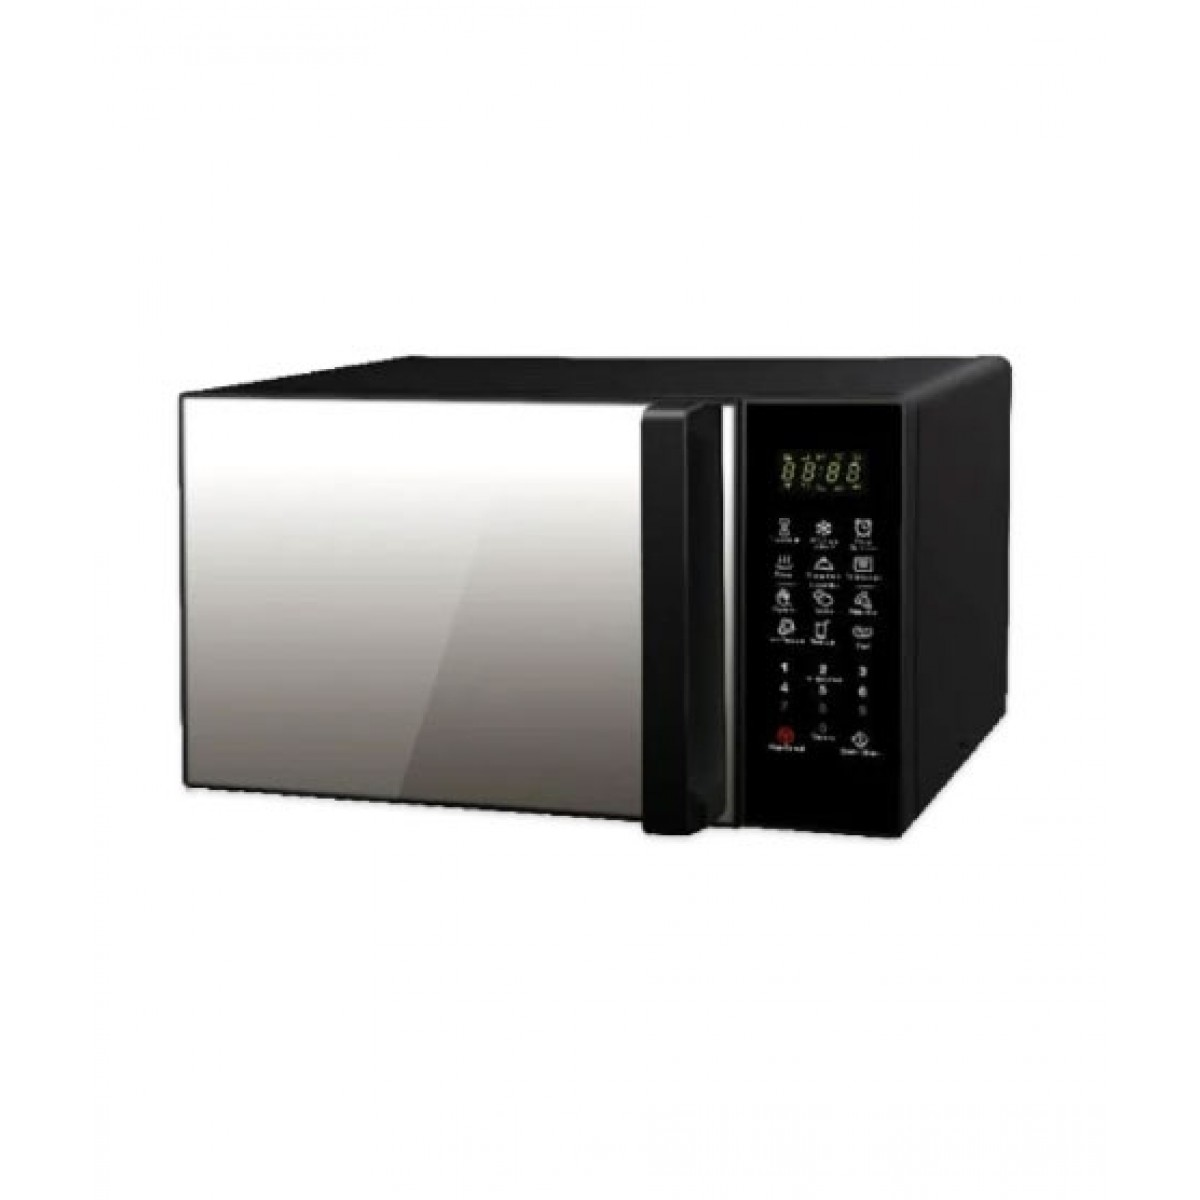 Orient Muffin Microwave Oven 30 Ltr Grill Black